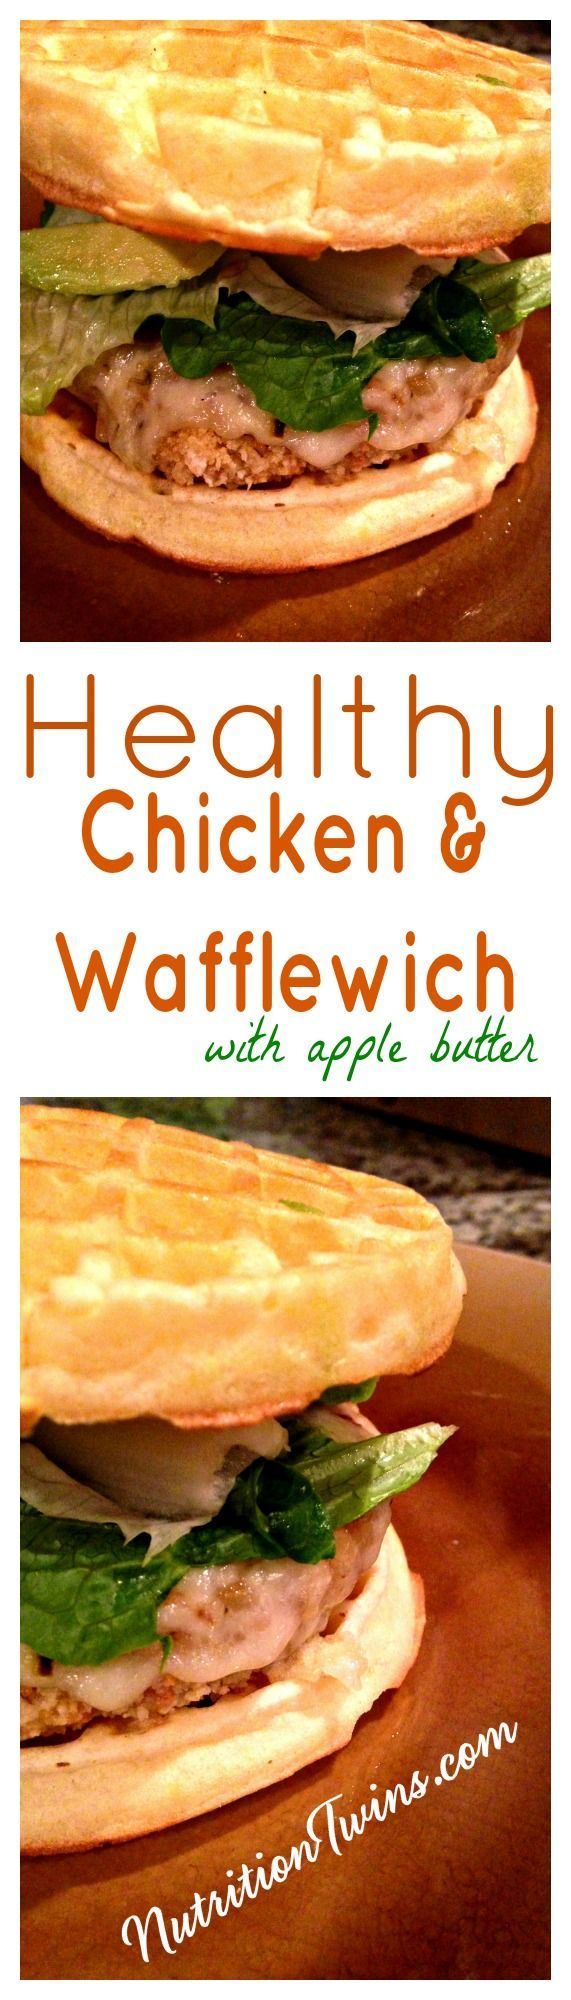 #wwwnutritiontwinscom #wafflewich #newsletter #nutrition #lightened #calories #southern #chicken #fi...